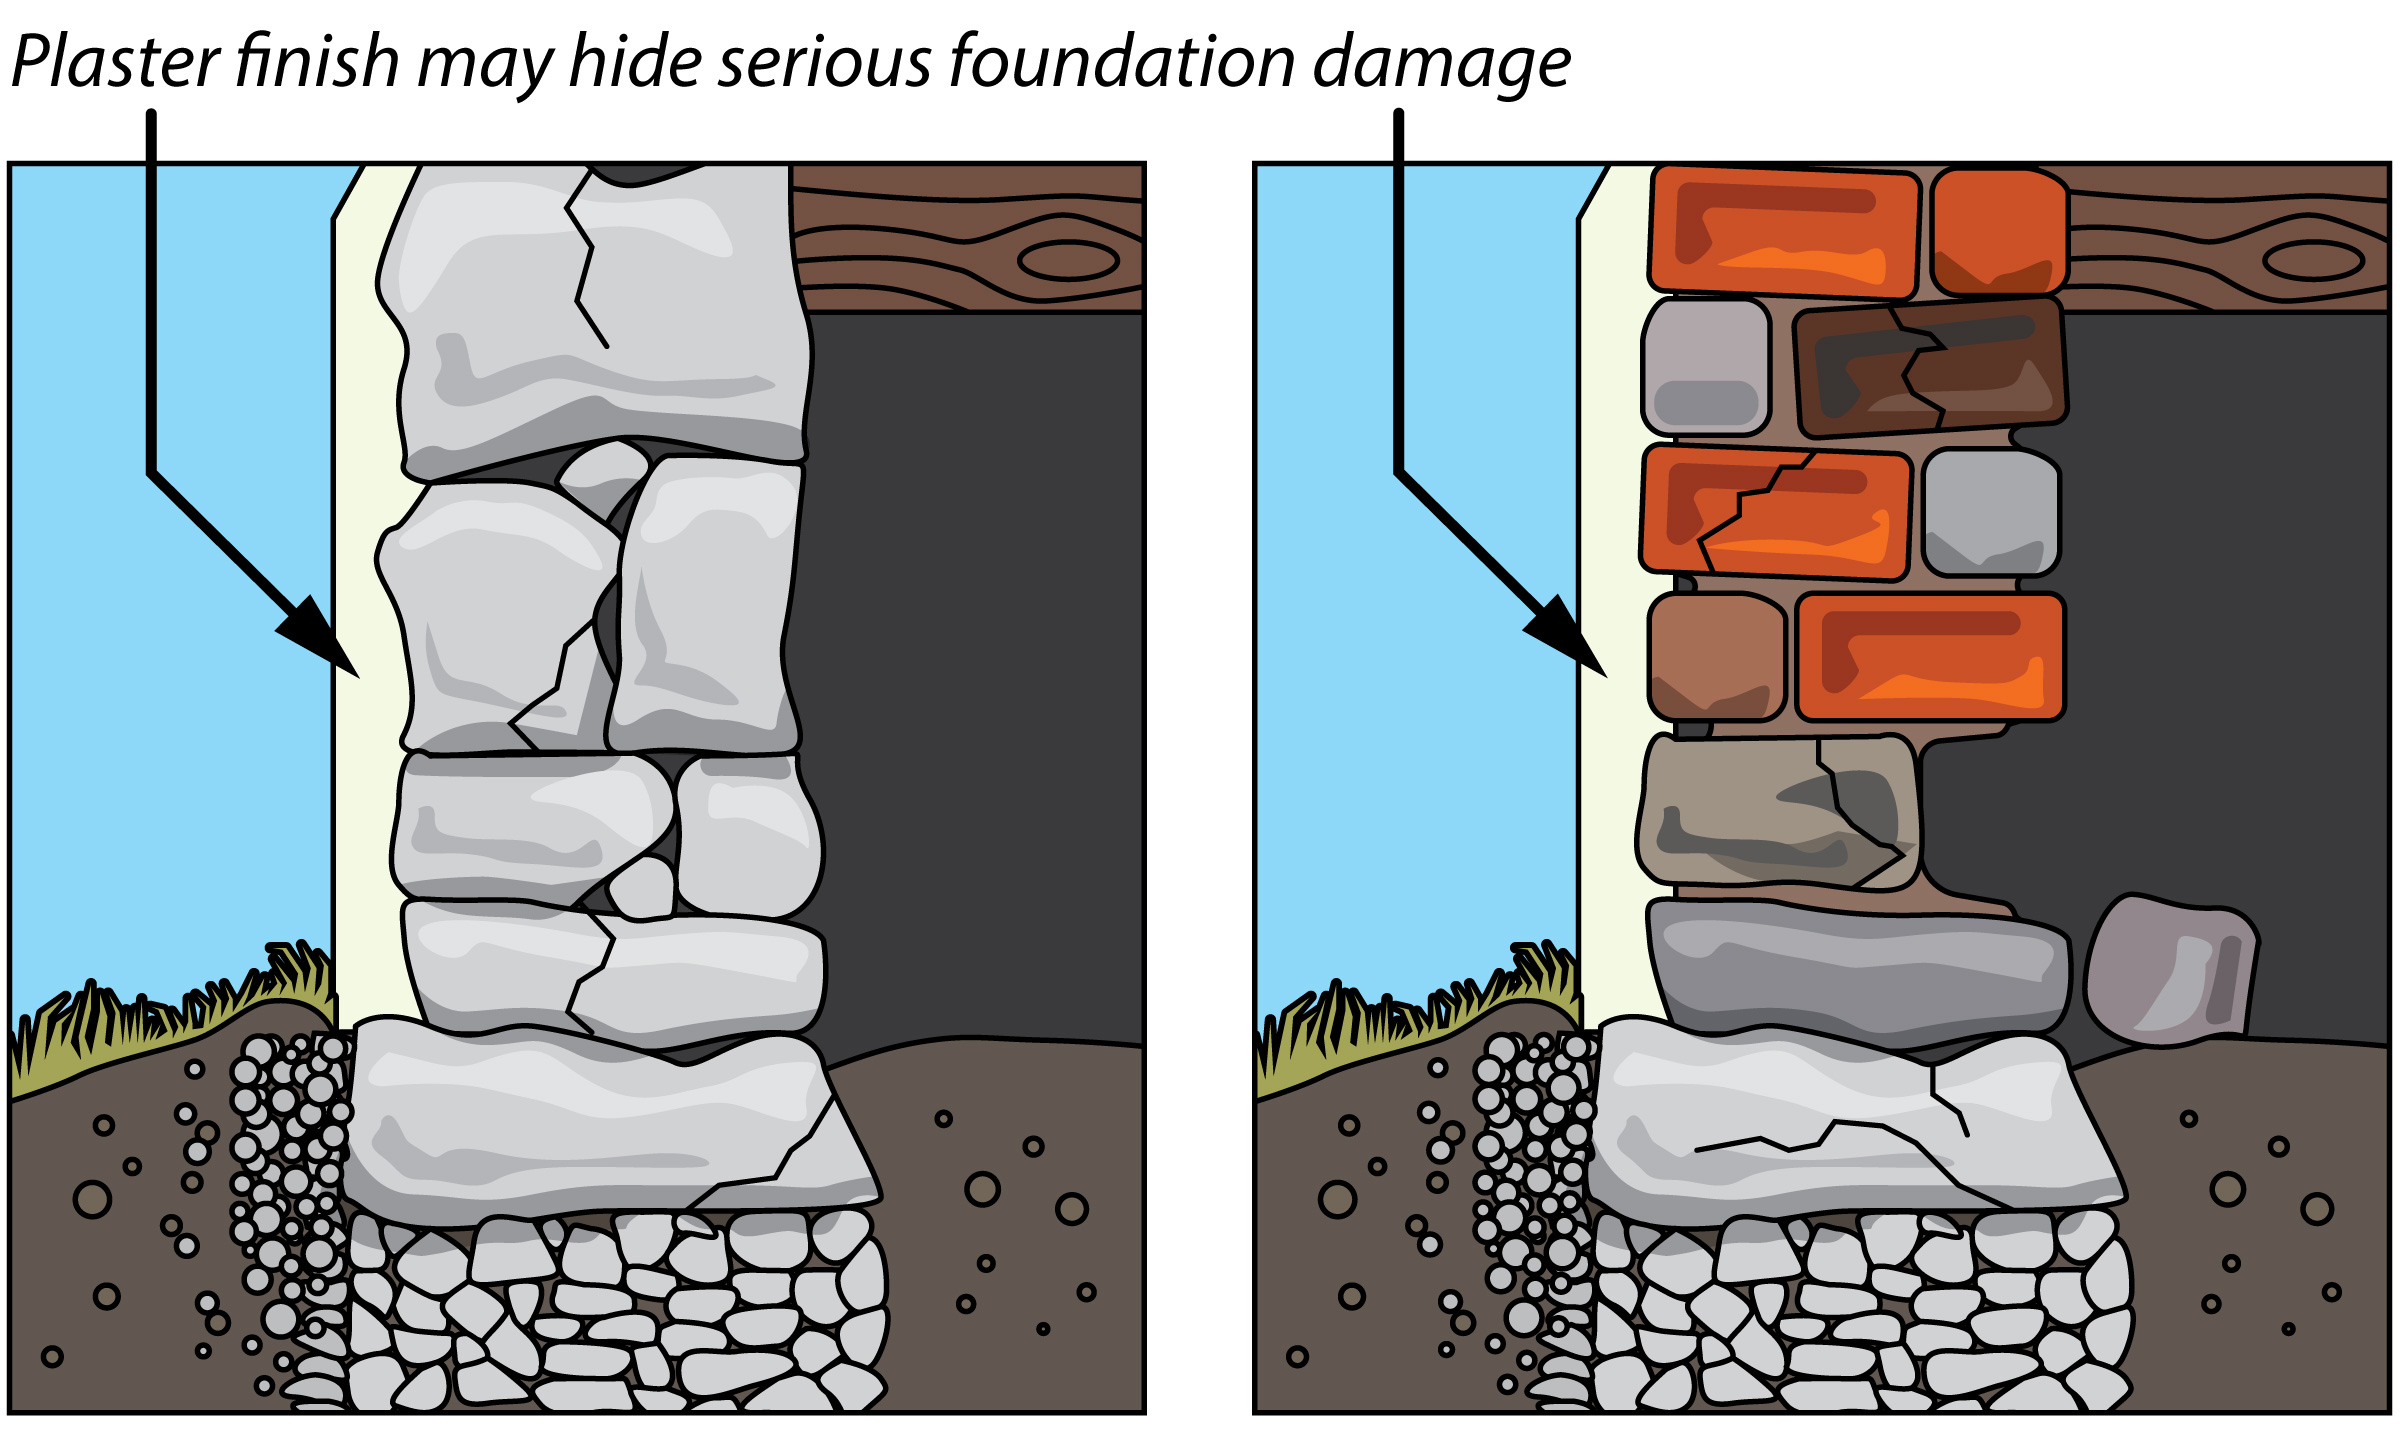 When an earthquake happens the bricks, quarry rocks, and stones inside a pre-70's rubble foundation can spall – break into chips, fragments, or become powder like. Spalling weakens the foundation.